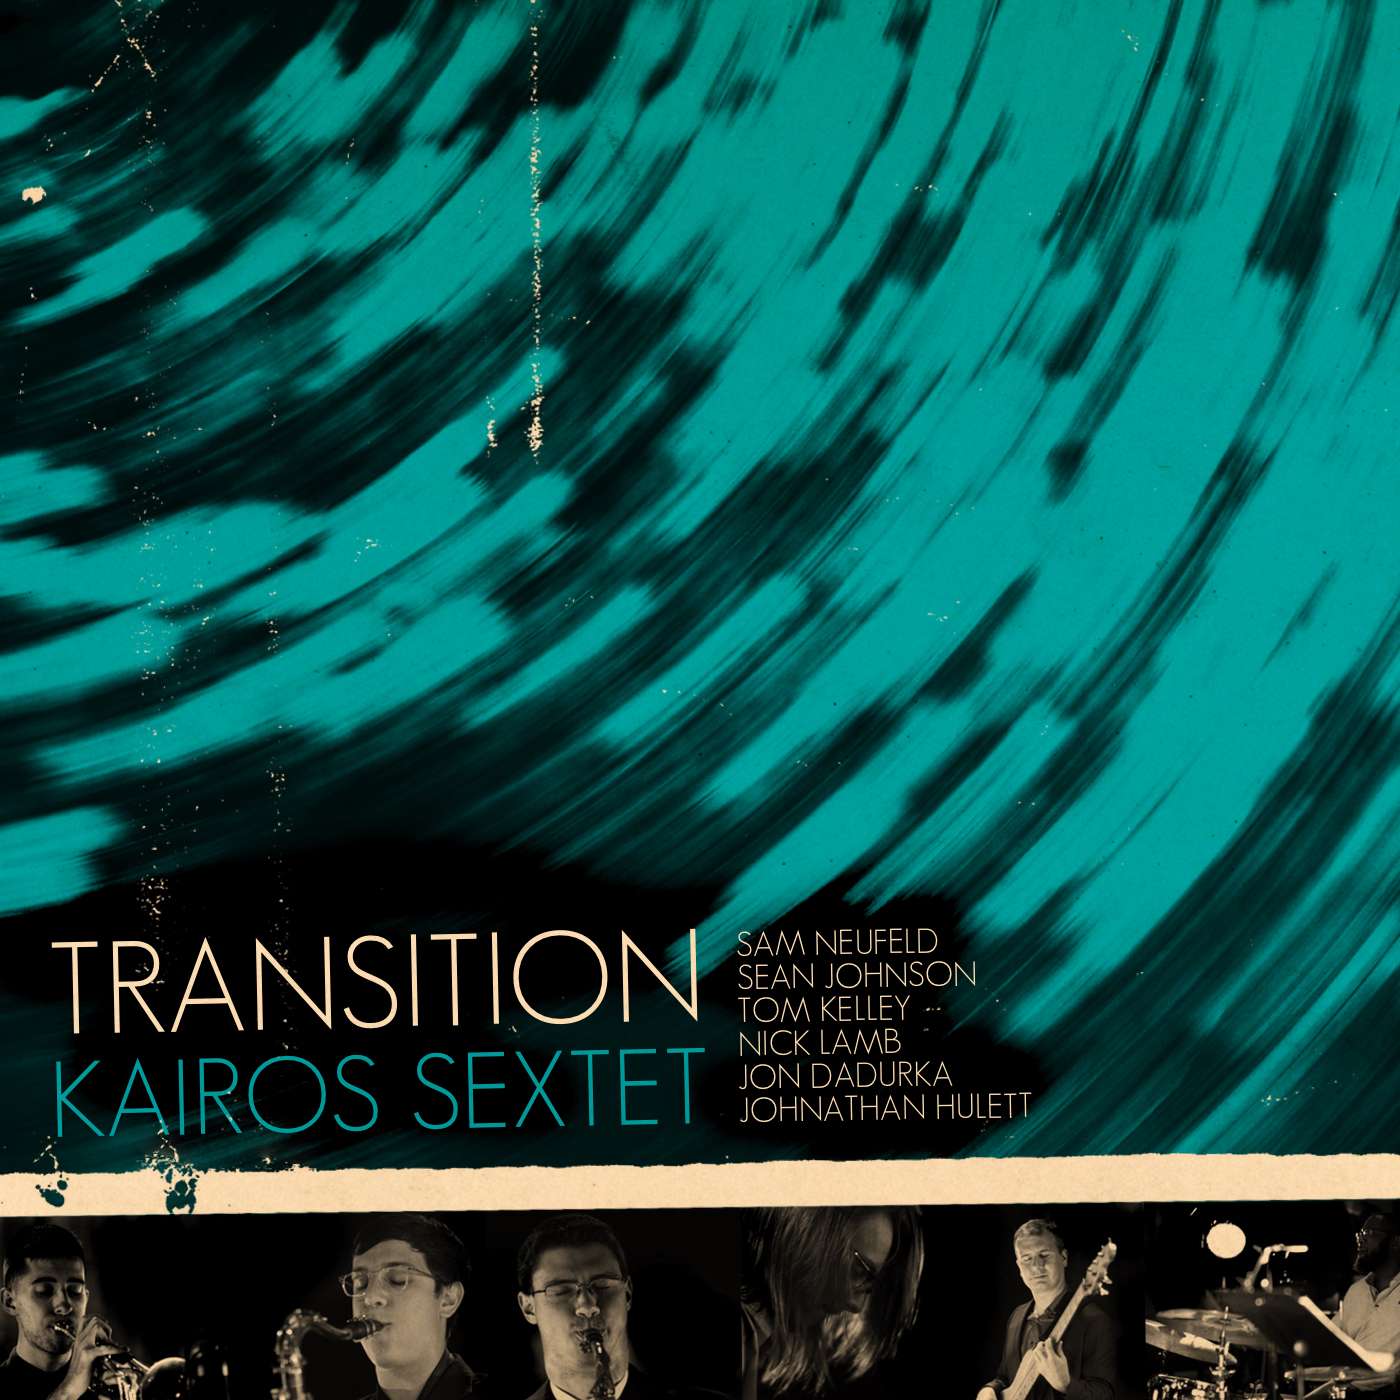 """Transition - MacArthur Fellow Dafnis Prieto presents Kairos Sextet,an all-star ensemble formed in the image of Dafnis's own ground-breaking group. The group's first outing, """"Transition,"""" is an homage to their mentor, Dafnis, and marks a turning point in the ensemble's trajectory. Under Prieto's tutelage the group has evolved from simply a group of exceptional individual musicians, becoming an exceptional group with a collective vision and unique voice. The album is comprised of all original material and includes Prieto's composition, """"Triangles and Circles,"""" as it was arranged for his own sextet.Sam Neufeld - TrumpetSean Johnson - Tenor SaxophoneTom Kelley - Alto and Soprano SaxophoneNick Lamb - PianoJon Dadurka - BassJonathan Hulett - Drums"""